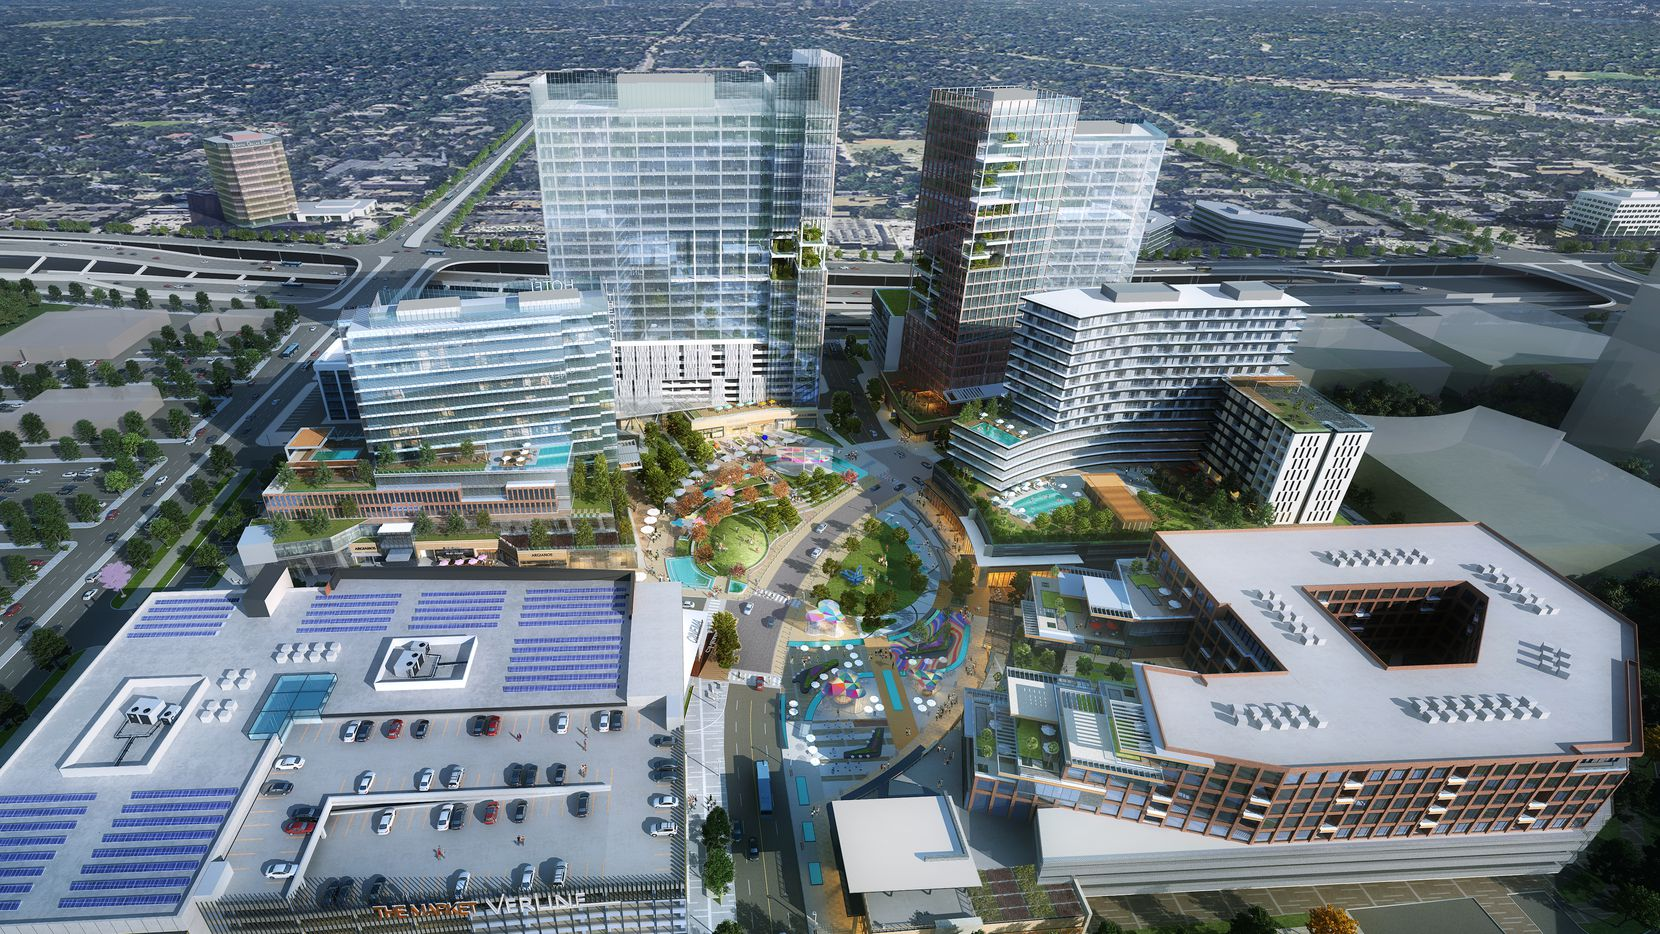 The $1 billion Park Heritage development will be built along LBJ Freeway on part of the old Valley View Mall property.